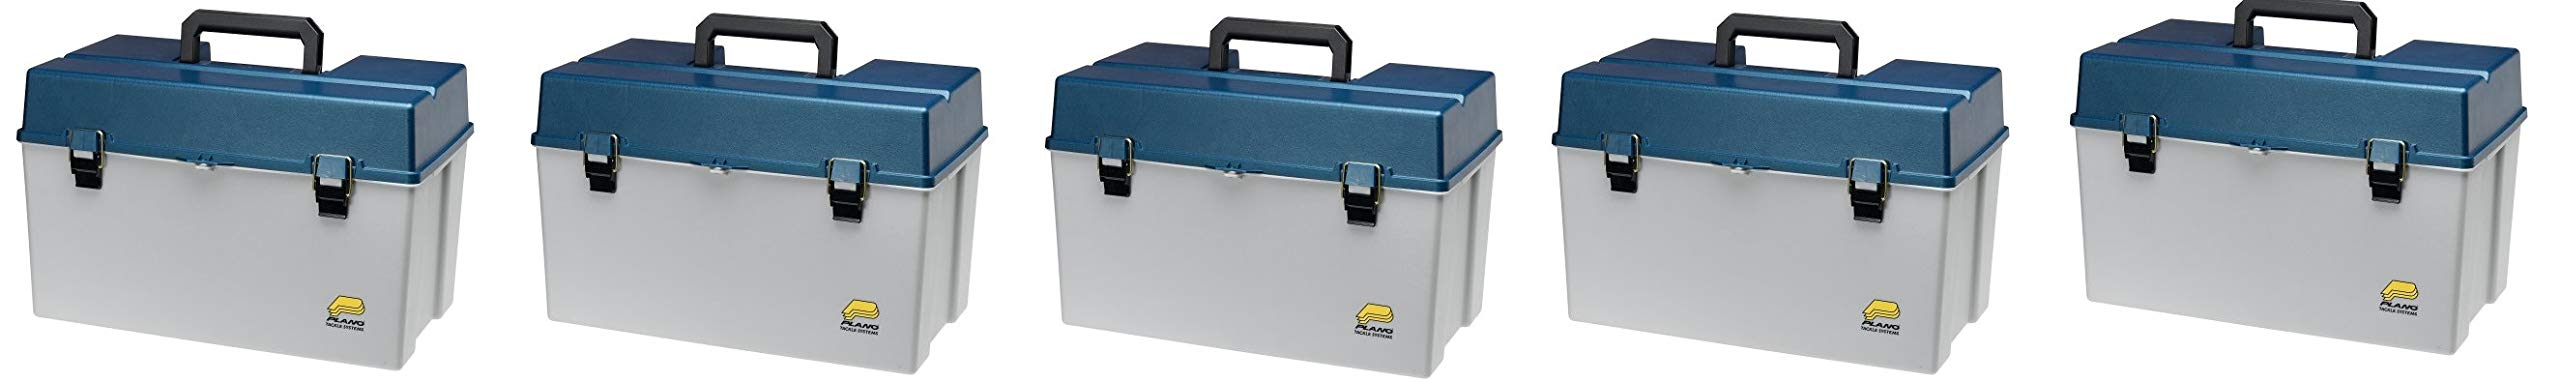 Plano Big Game System Tackle Box (Pack of 5)